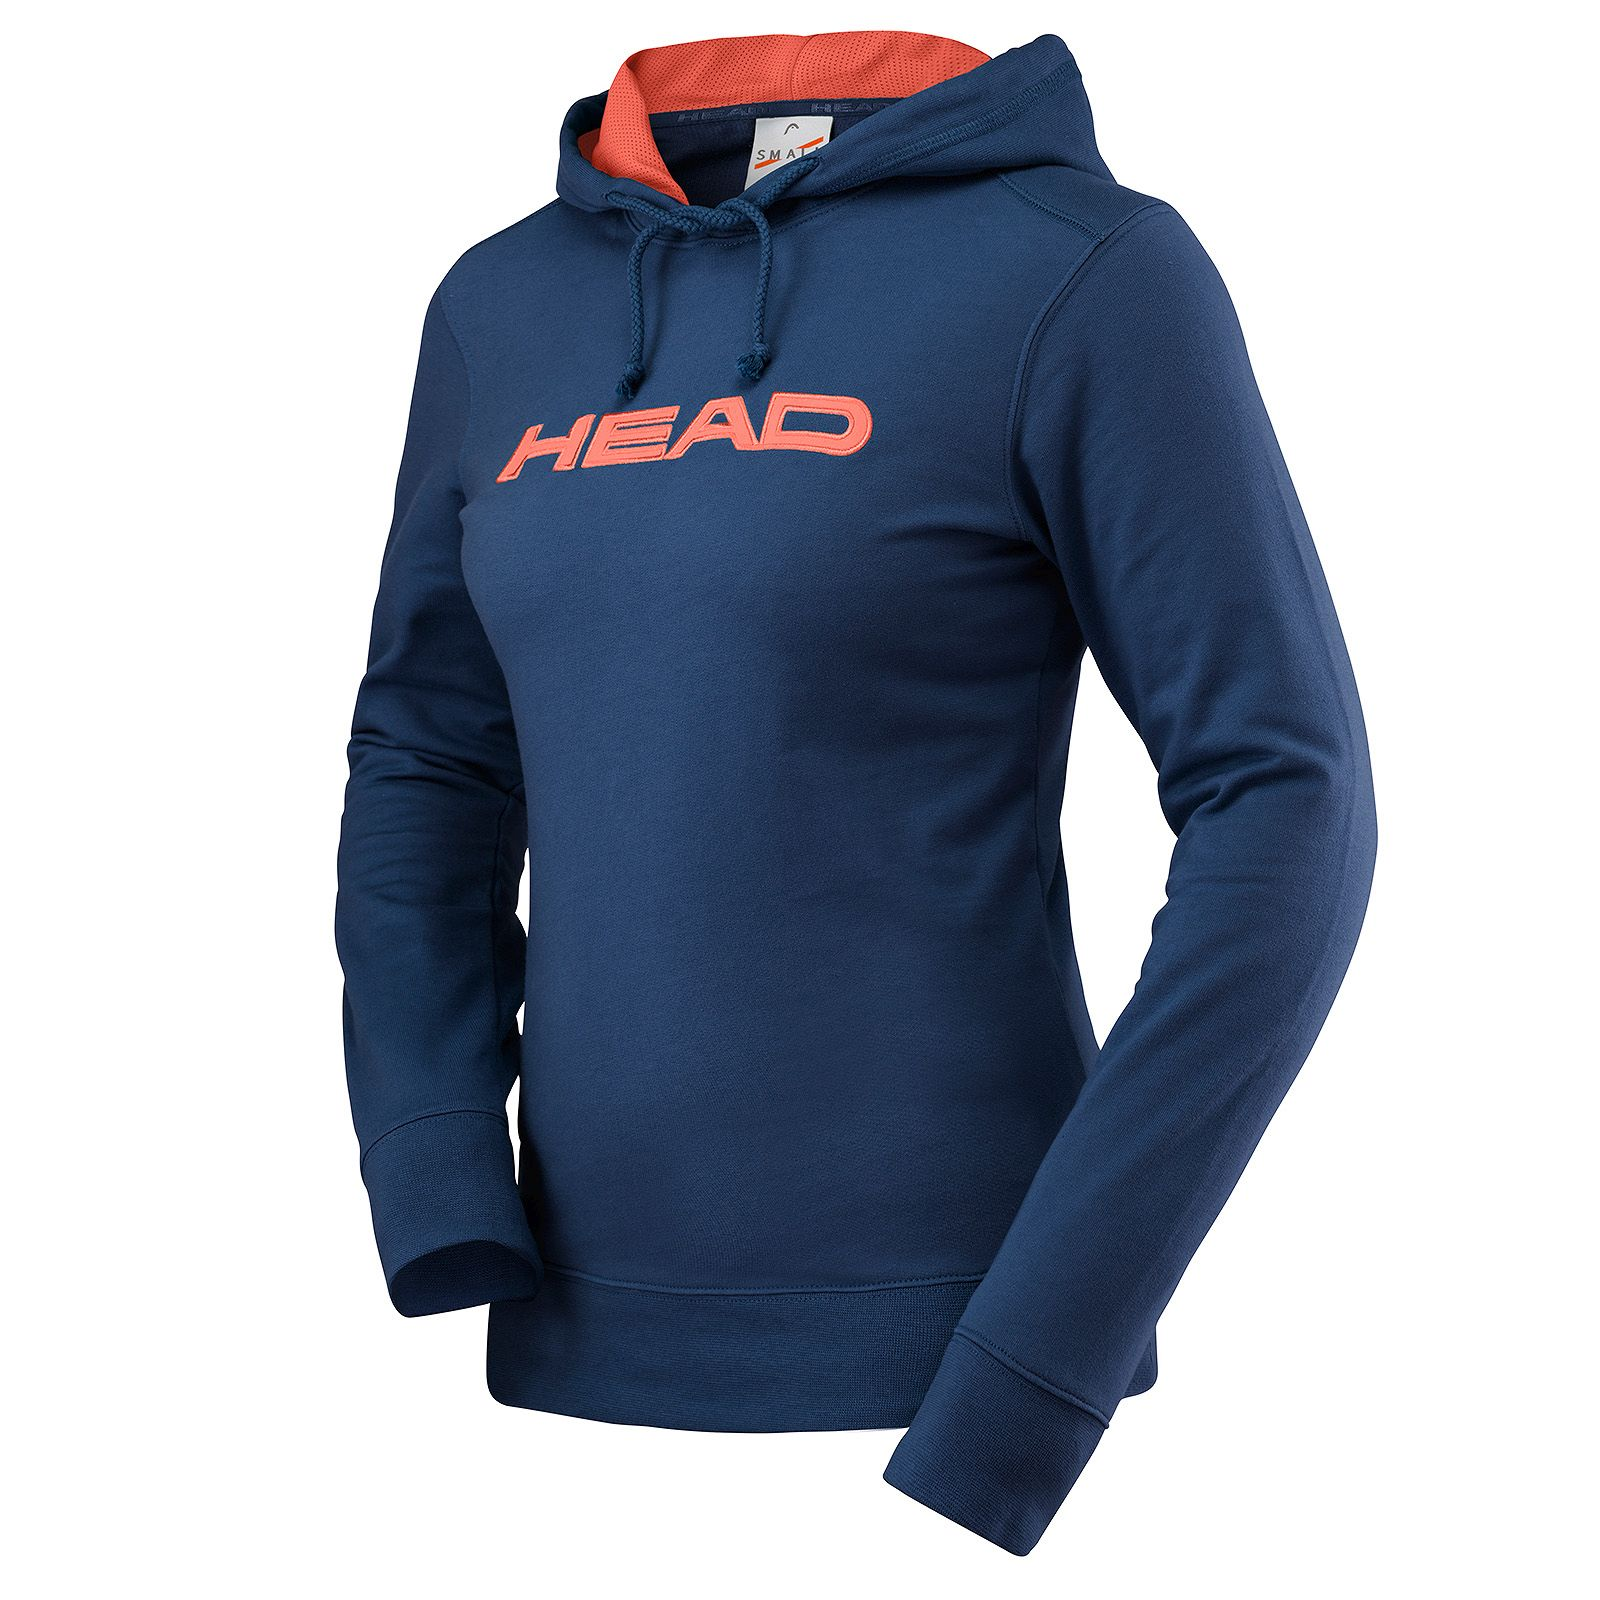 HEAD Transition Rosie Hoody Women Blue S